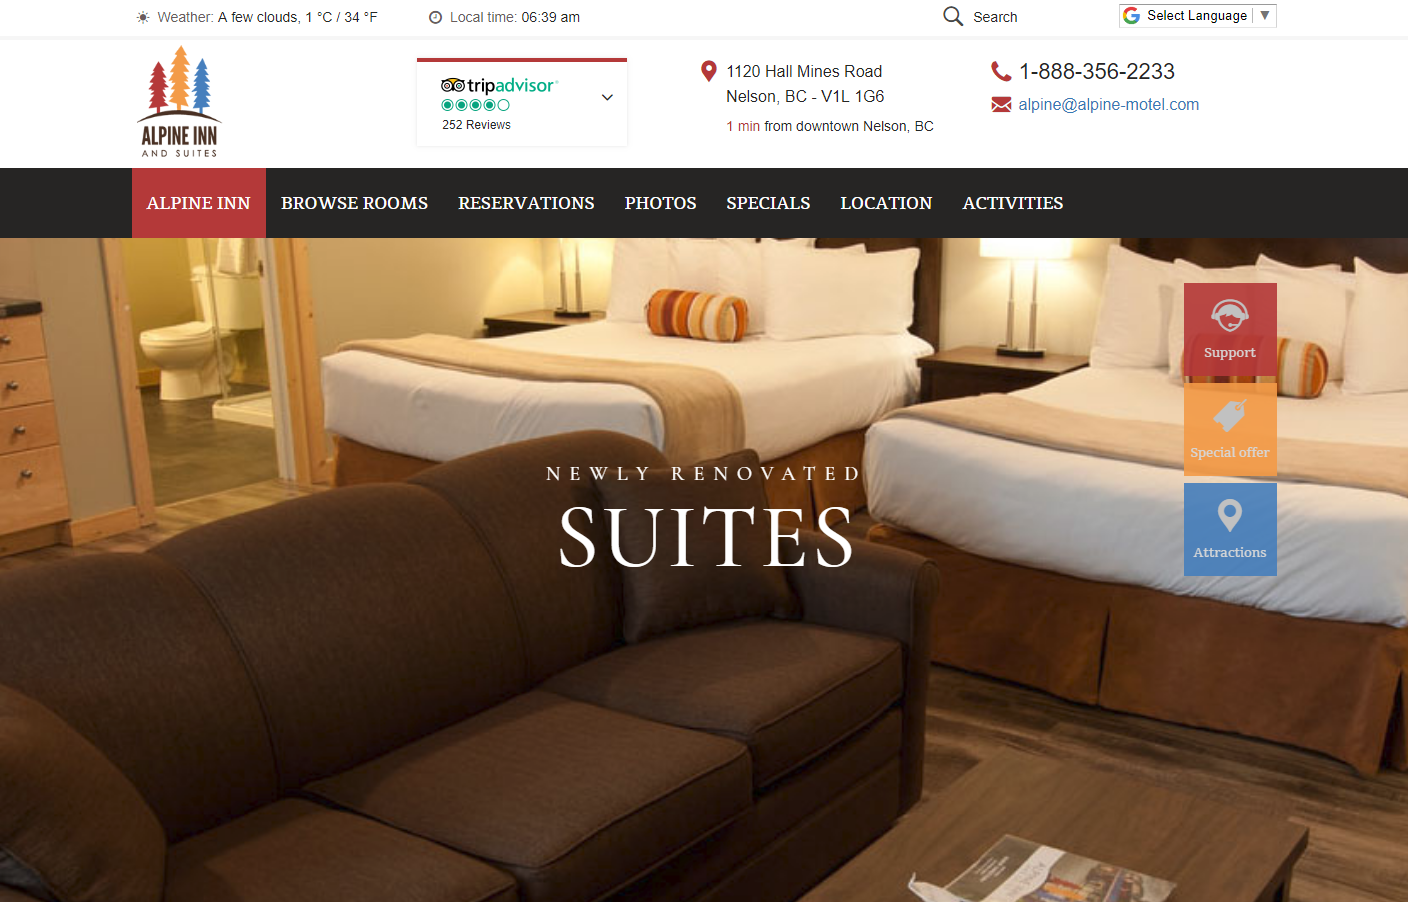 Beautiful new website re-design with modern features and expanded marketing potential.… Read more